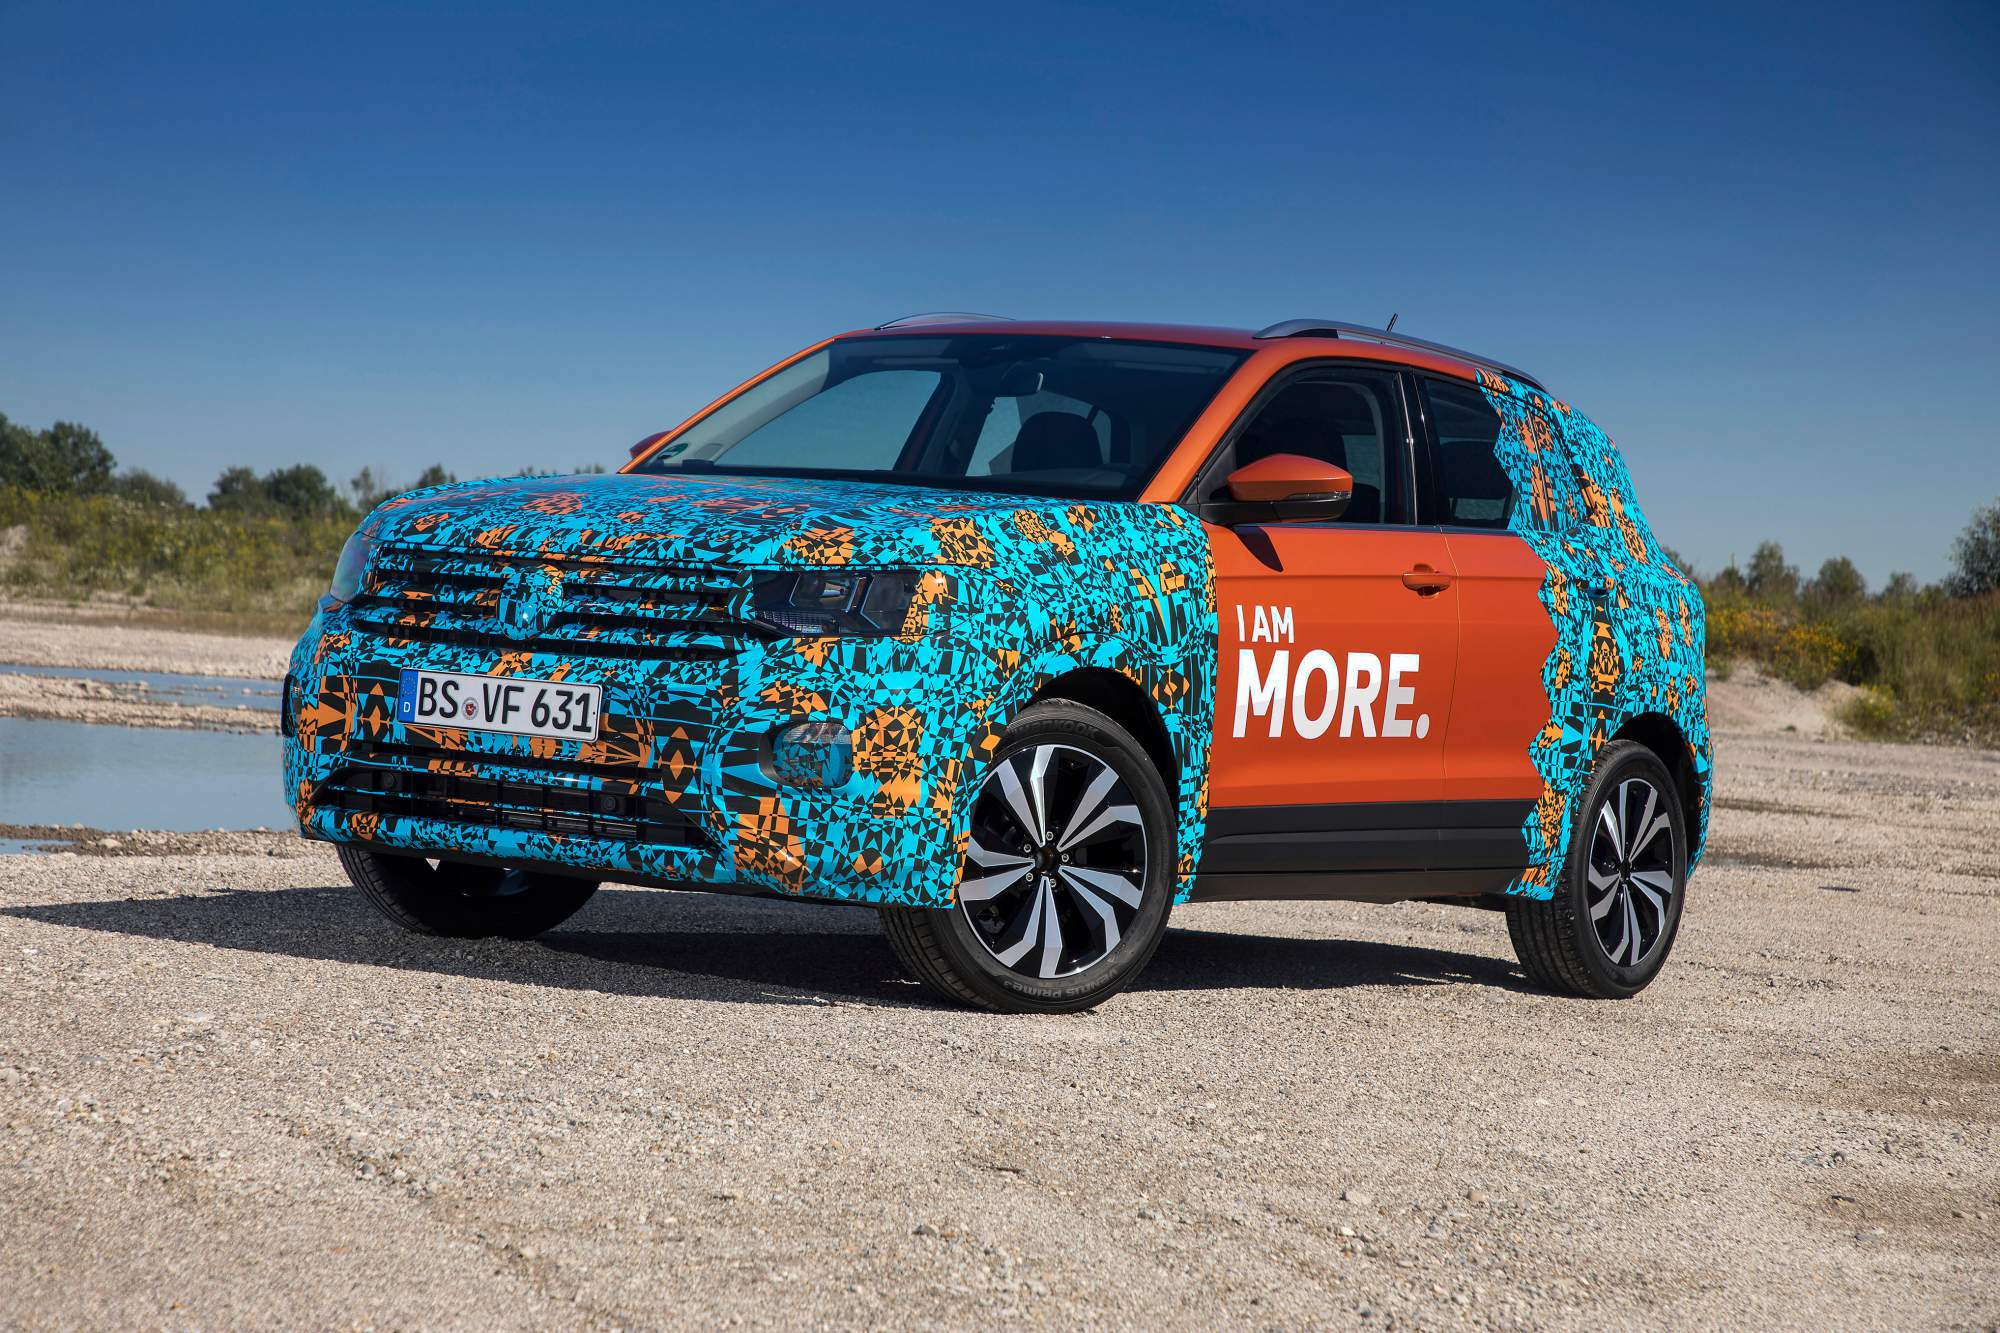 https://cdn.drivemag.net/media/default/0001/89/2019-VW-T-Cross-10-2278.jpeg